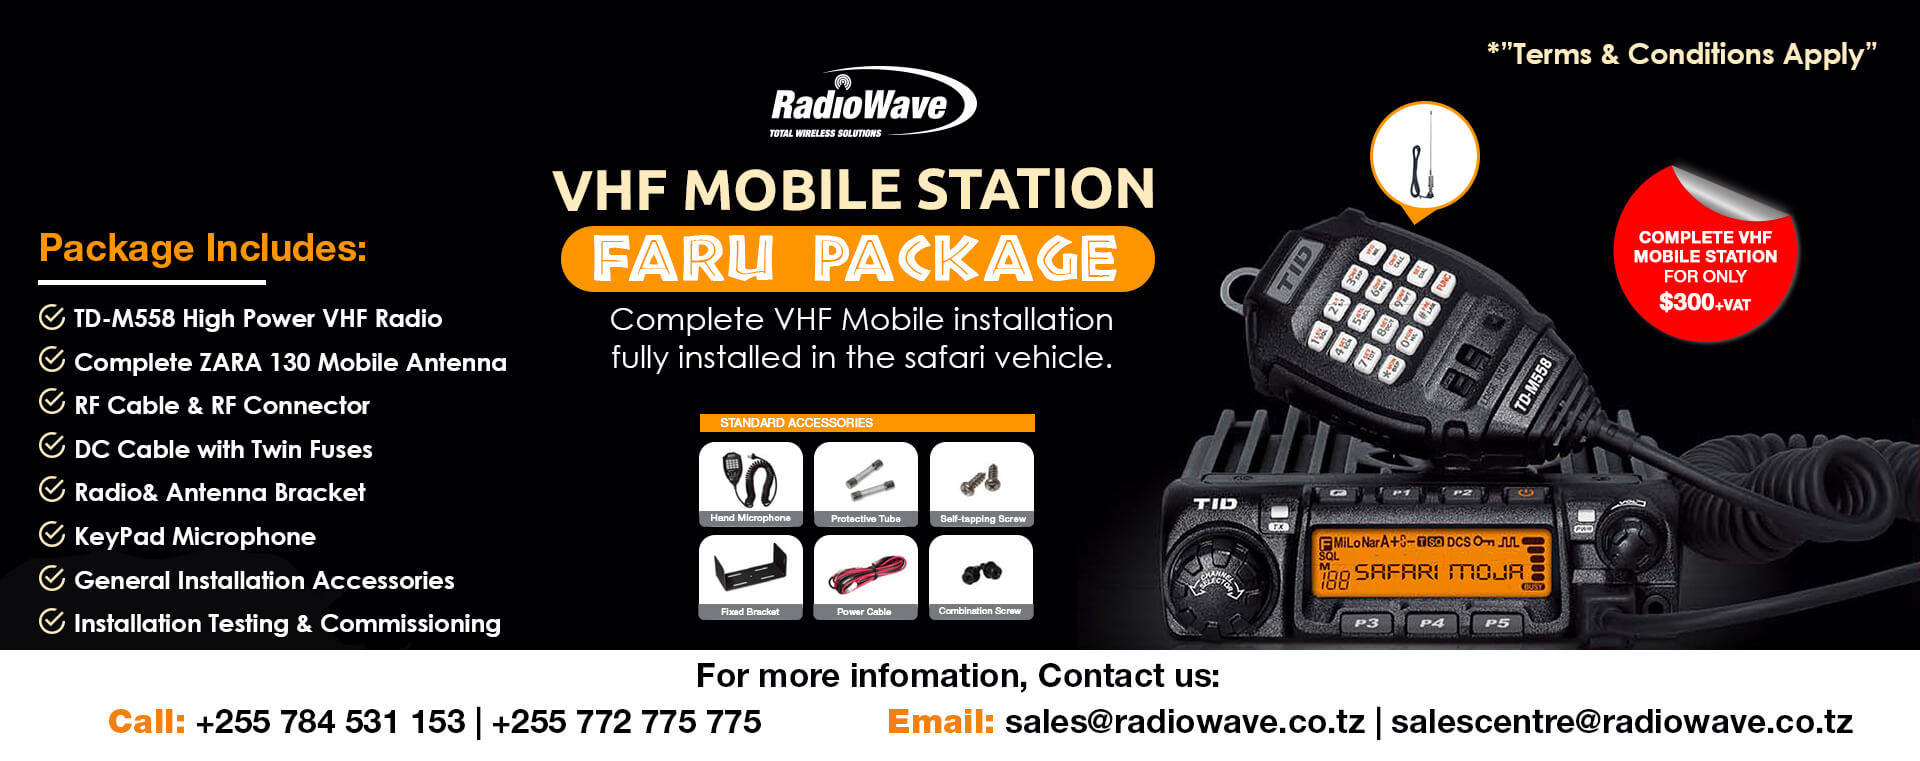 faru-package-rwcl